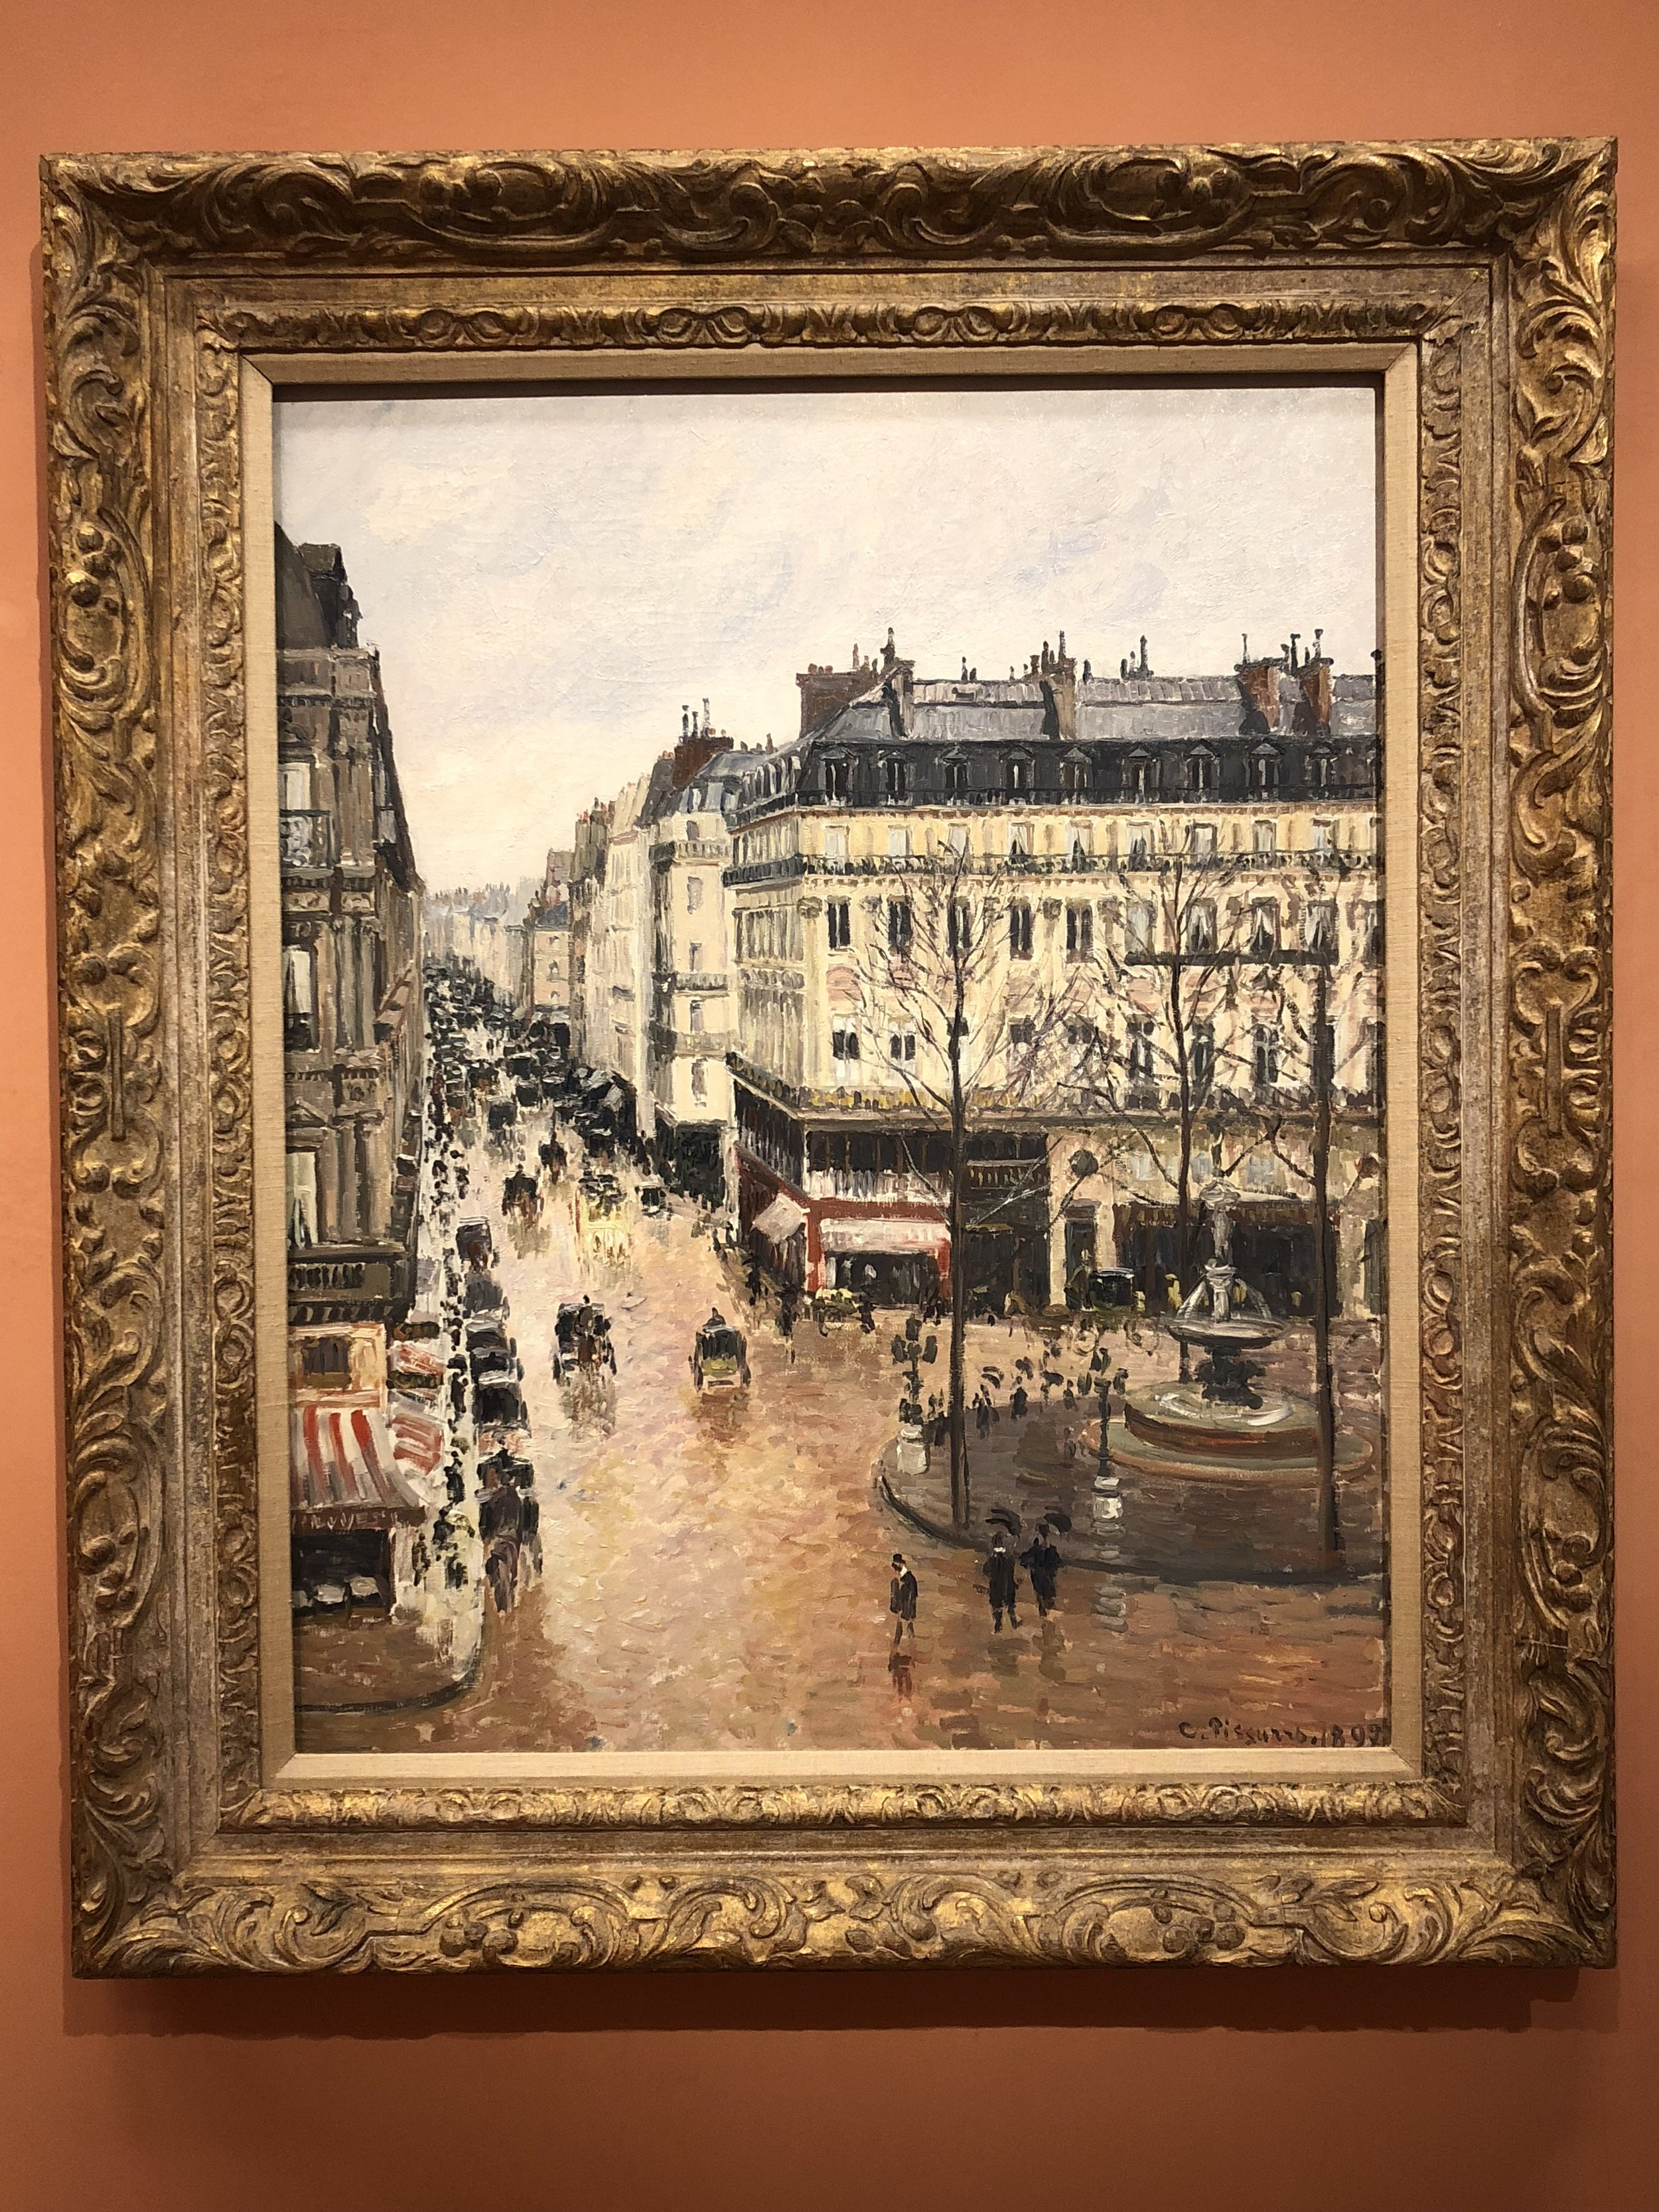 Camille Pissarro  Rue Saint-Honore in the Afternoon, Effect of Rain, 1897